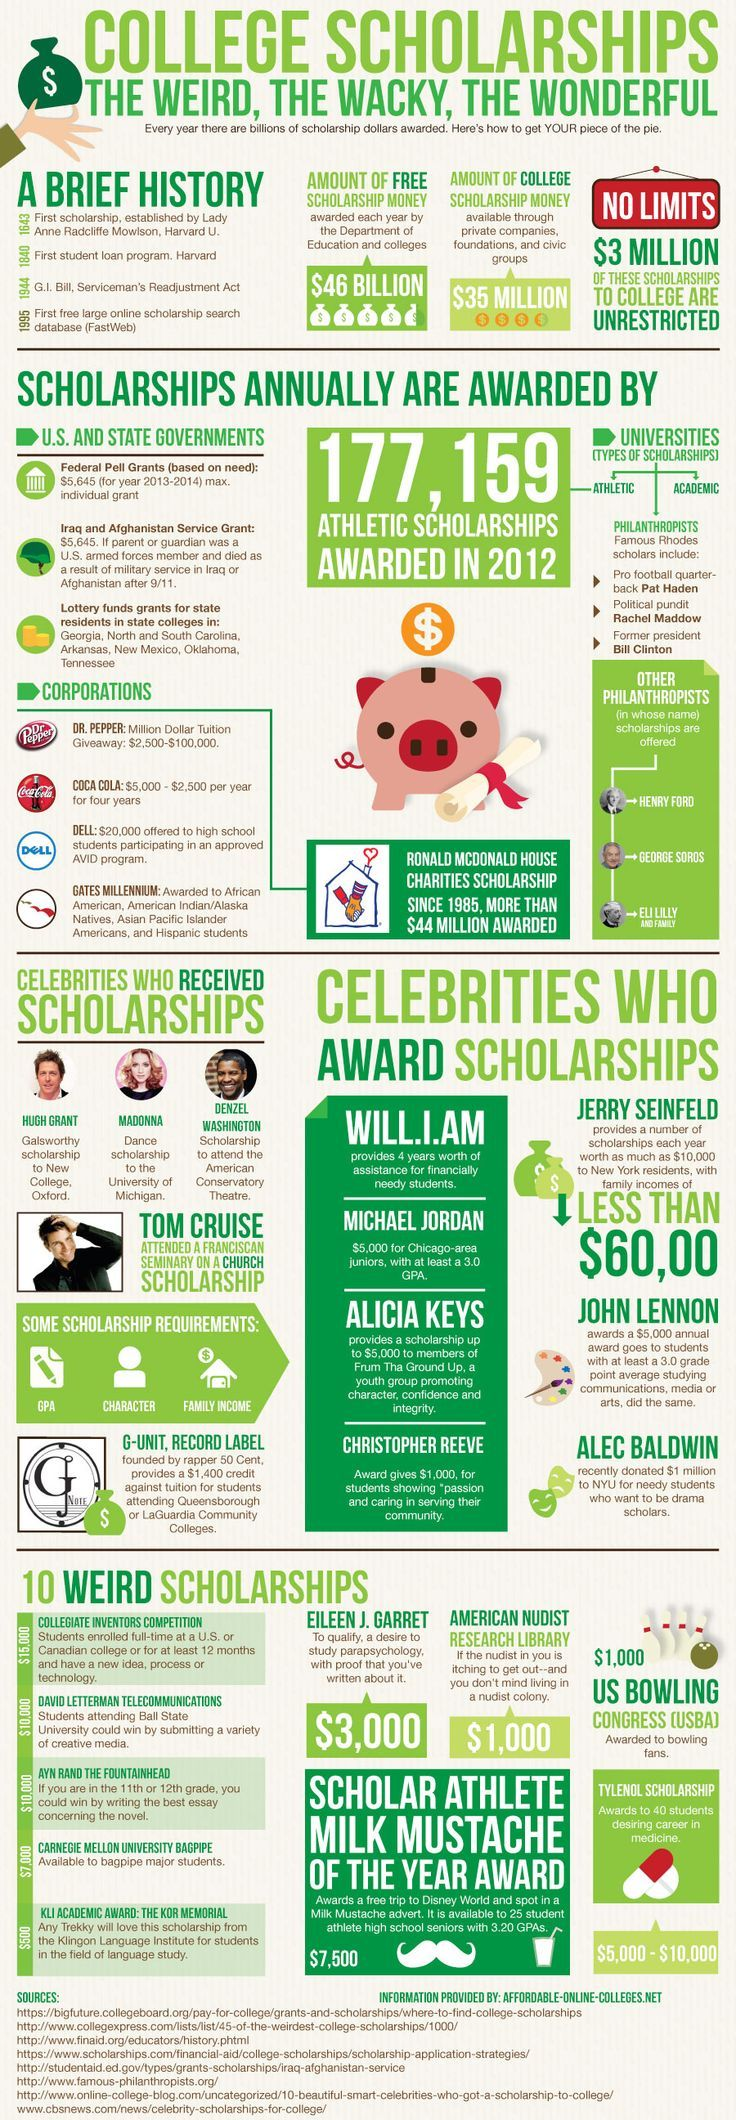 College Scholarships: The weird, the wacky, the wonderful. Check out this infographic and find more college scholarships!